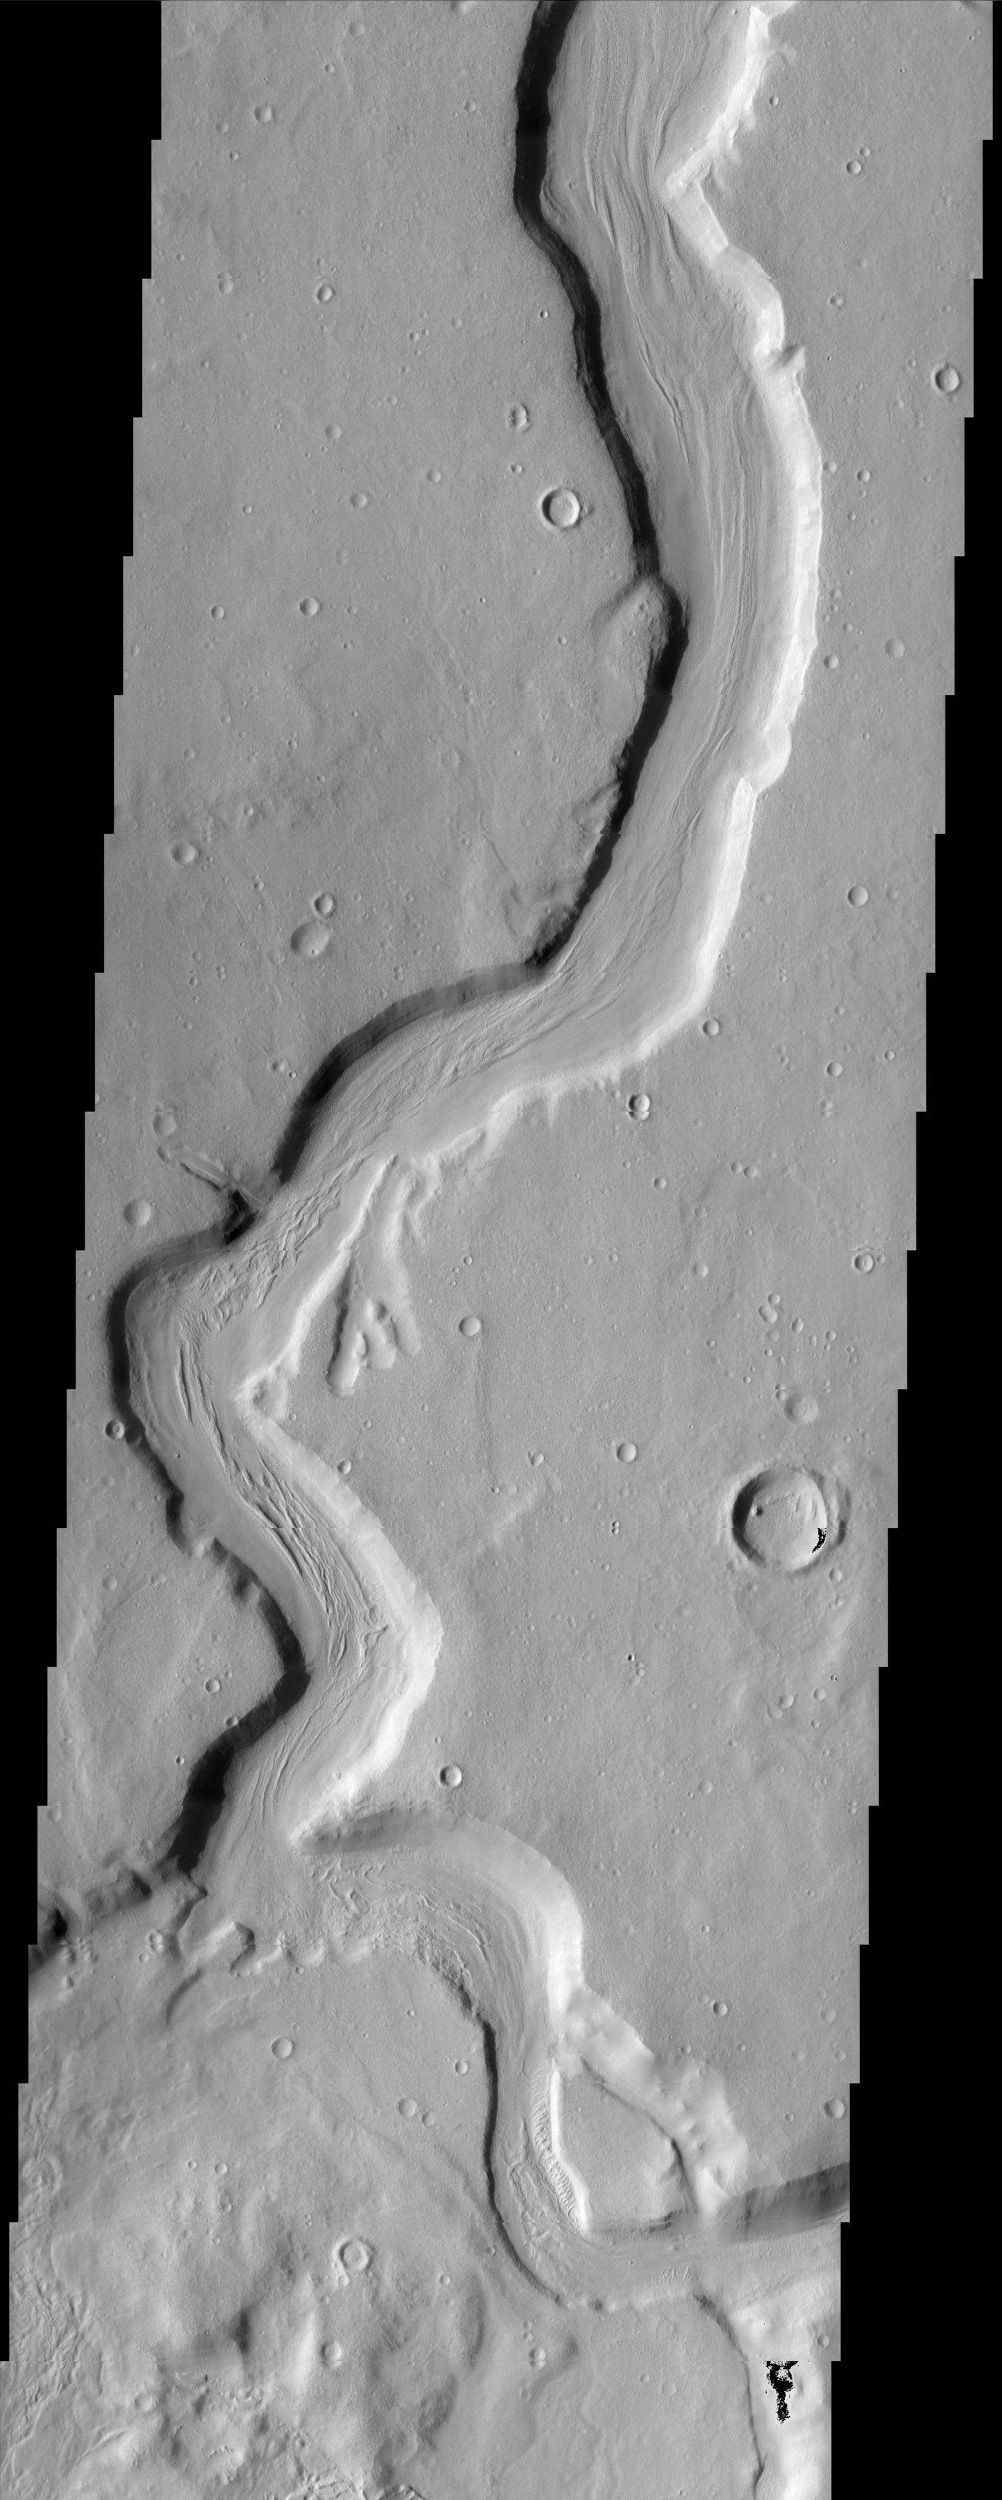 The sinuous channel in this NASA Mars Odyssey image begins at the edge of Cerulli Crater in northern Arabia and snakes its way across 1,000 km (621 miles) of cratered highlands before reaching Deuteronilus Mensae at the boundary of the northern lowlands.